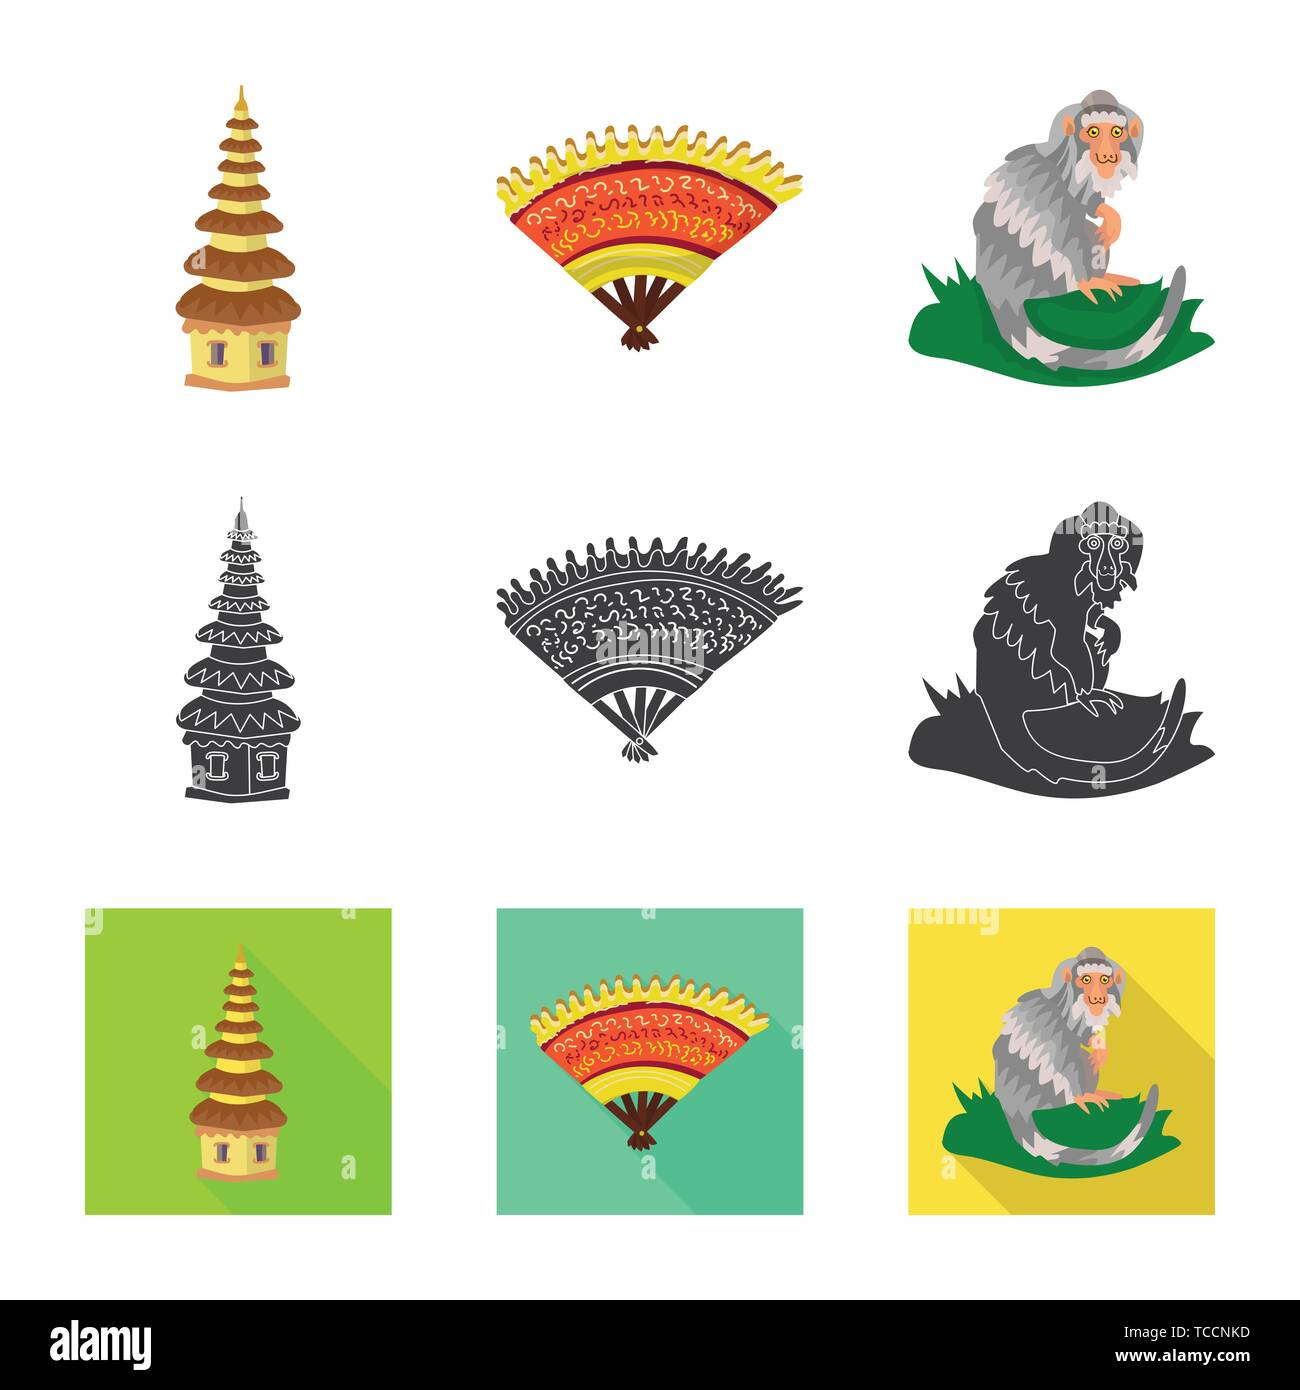 Temple Fan Monkey Landmark Beautiful Animal Pura Summer Jungle Hindu Vintage Ape Architecture Cloth Tropical Pray Embroidery Tail Culture Traditions Zoo Building Wind Safari Ancient Fresh Wild Religion Gesture Marmoset Travel Tourism Traditional Island